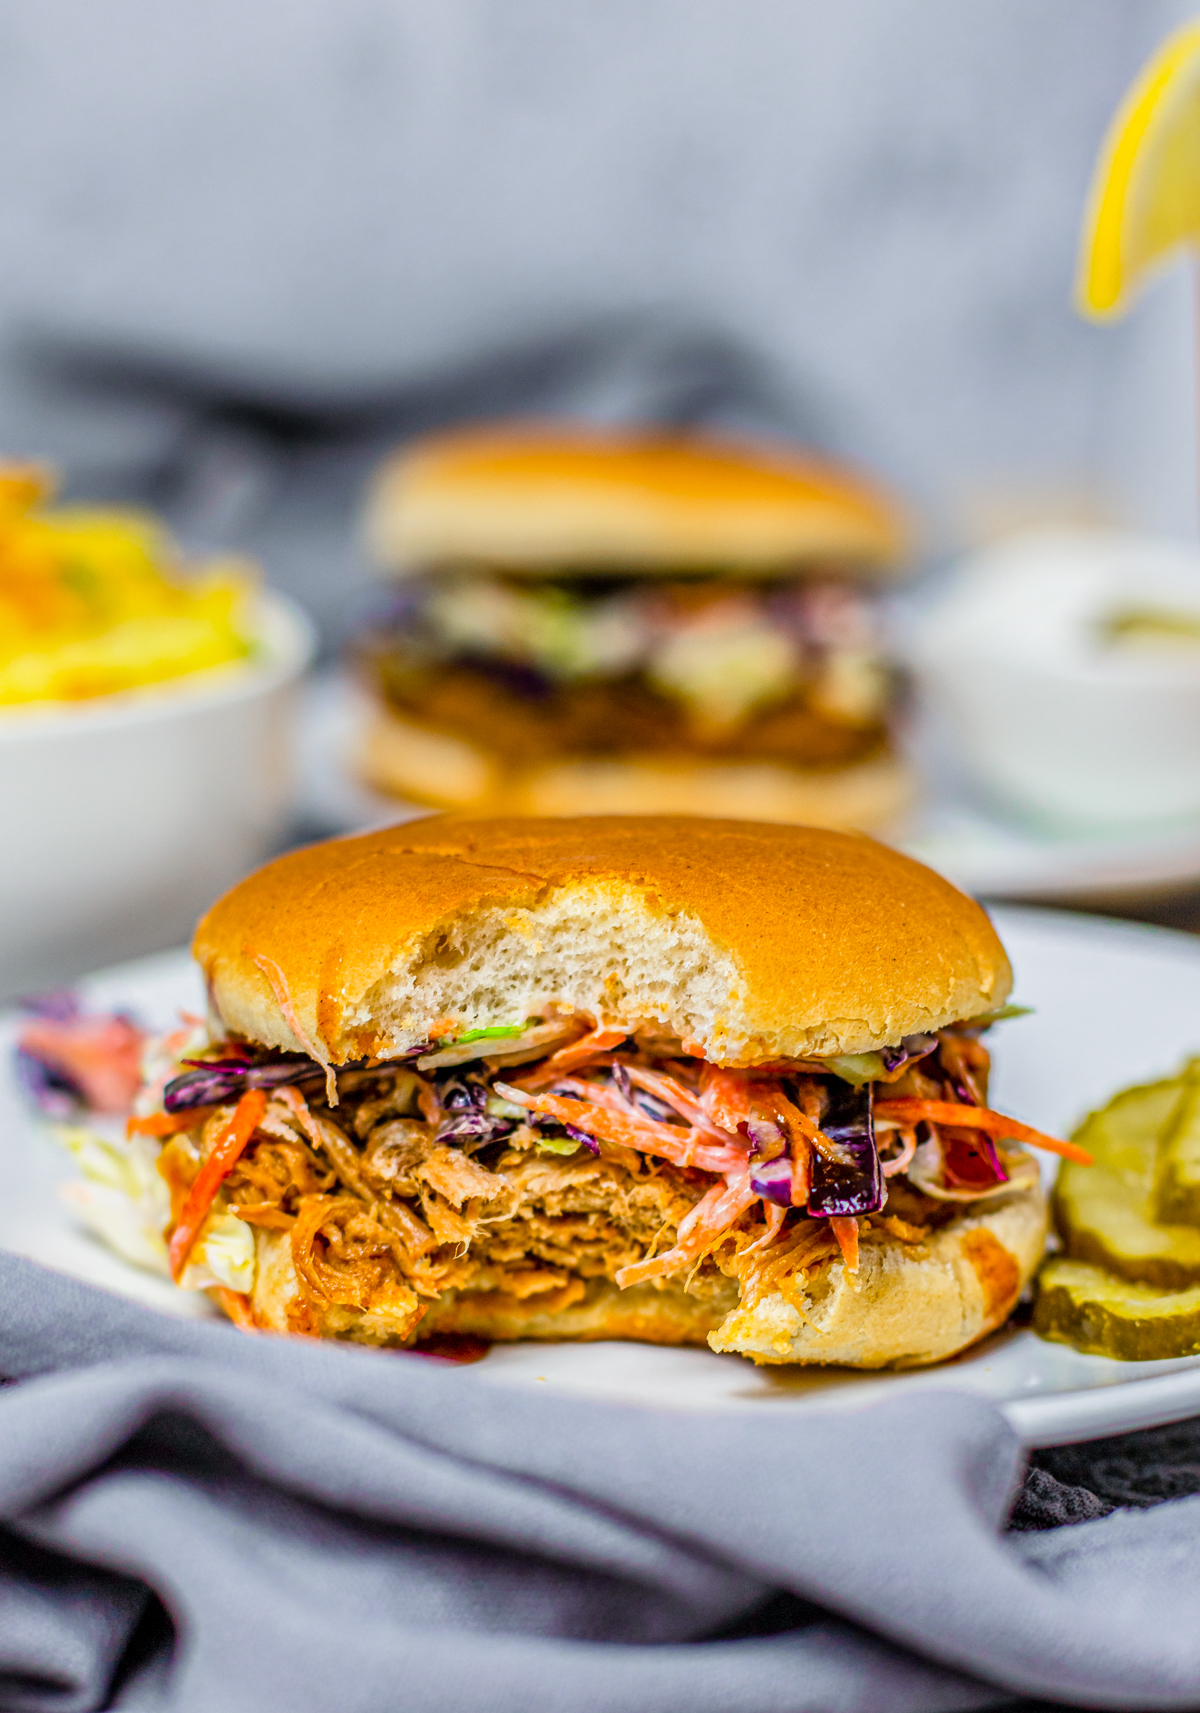 Crock Pot Pulled Pork Sandwich on plate with bite taken out